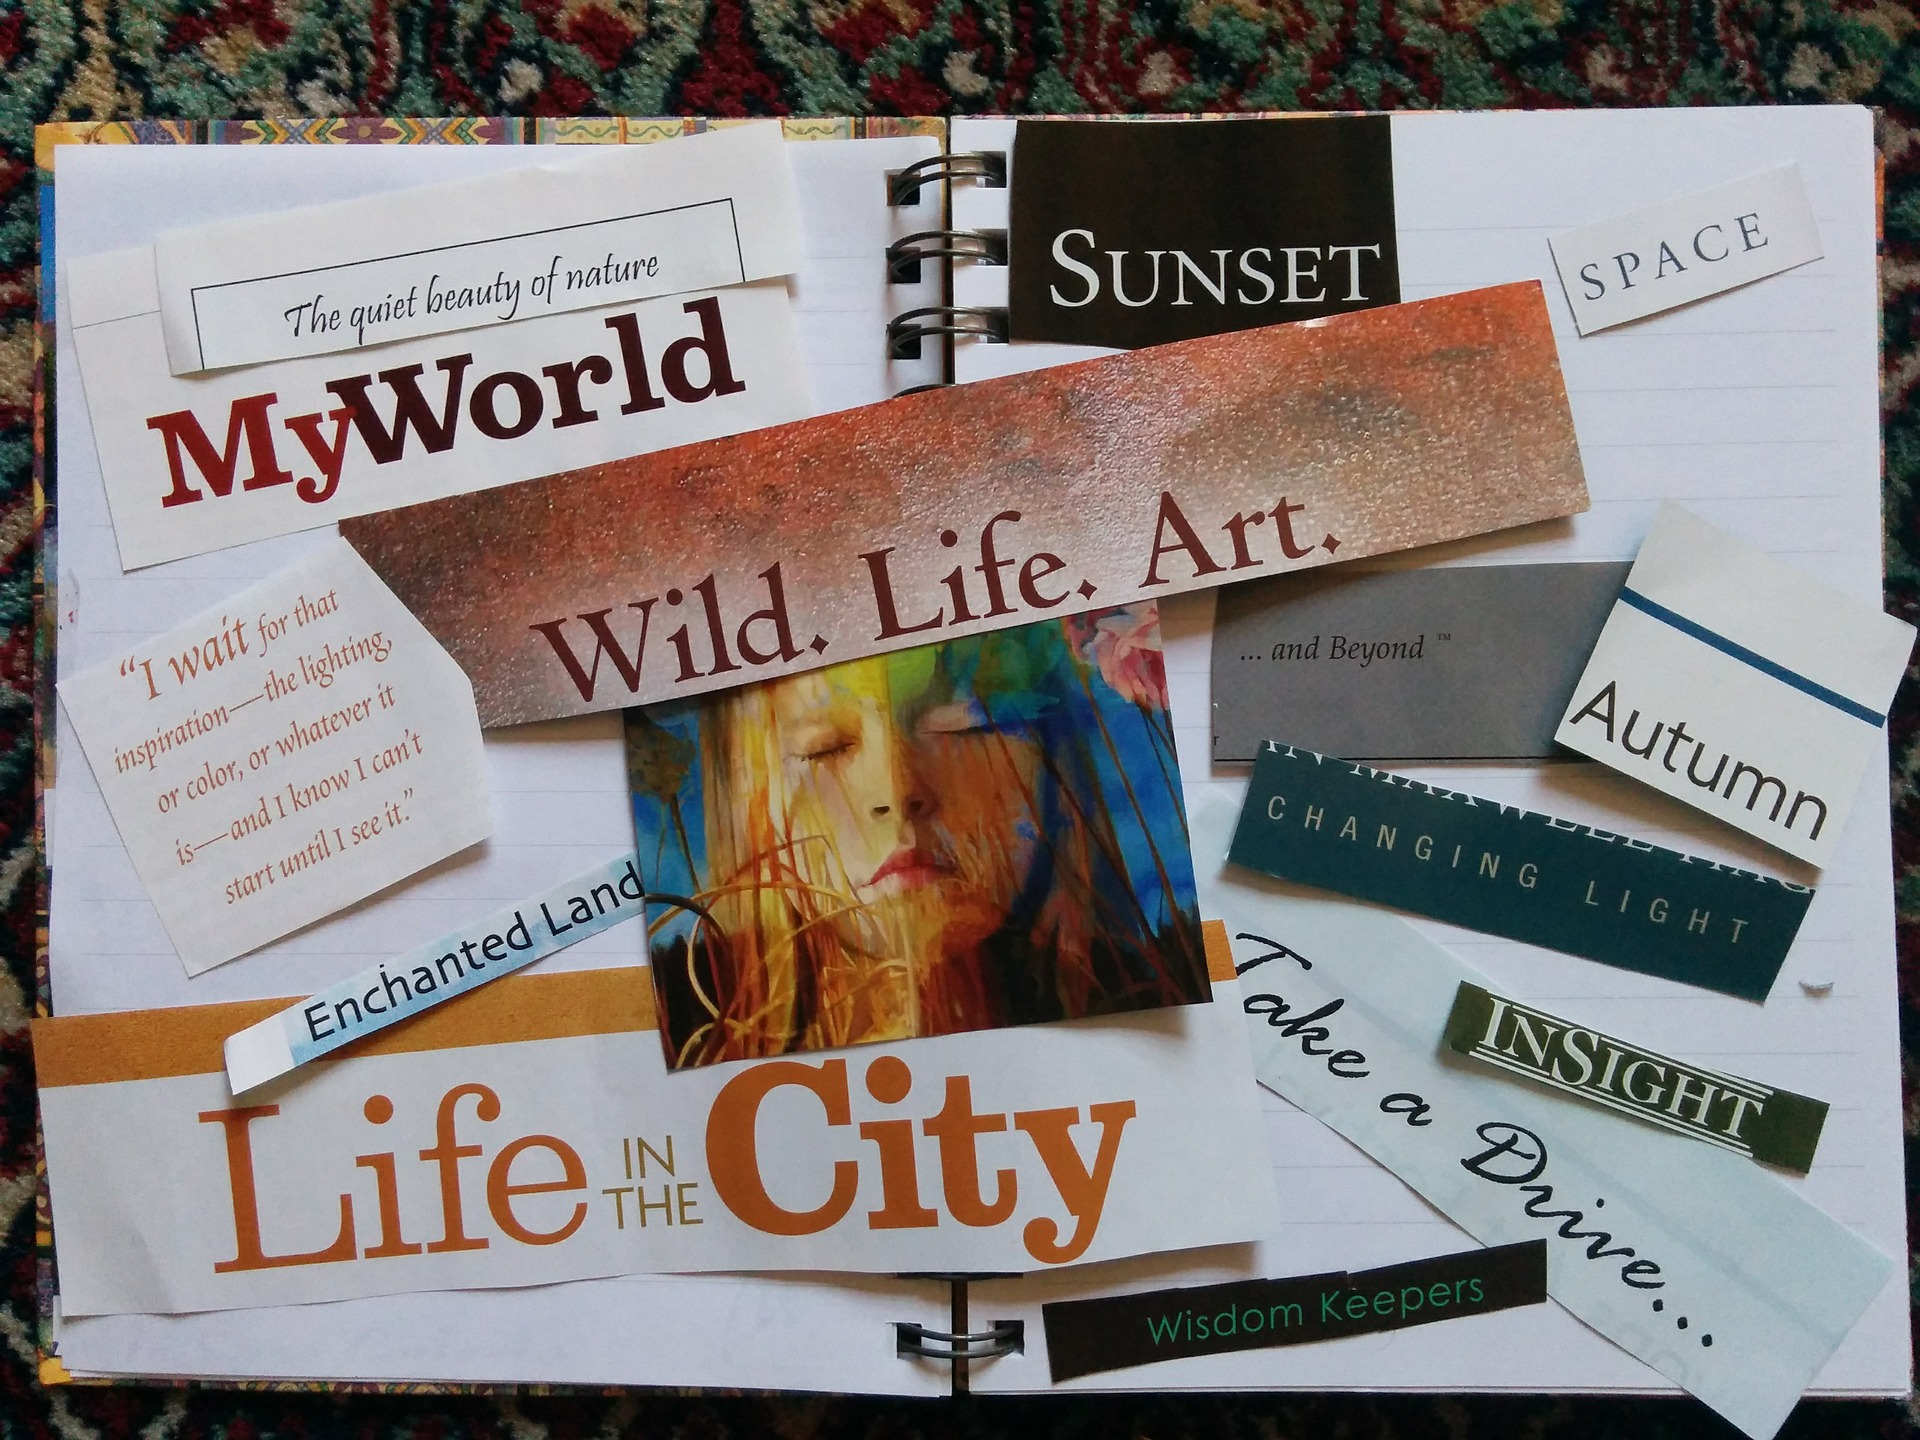 image of vision board with motivational words